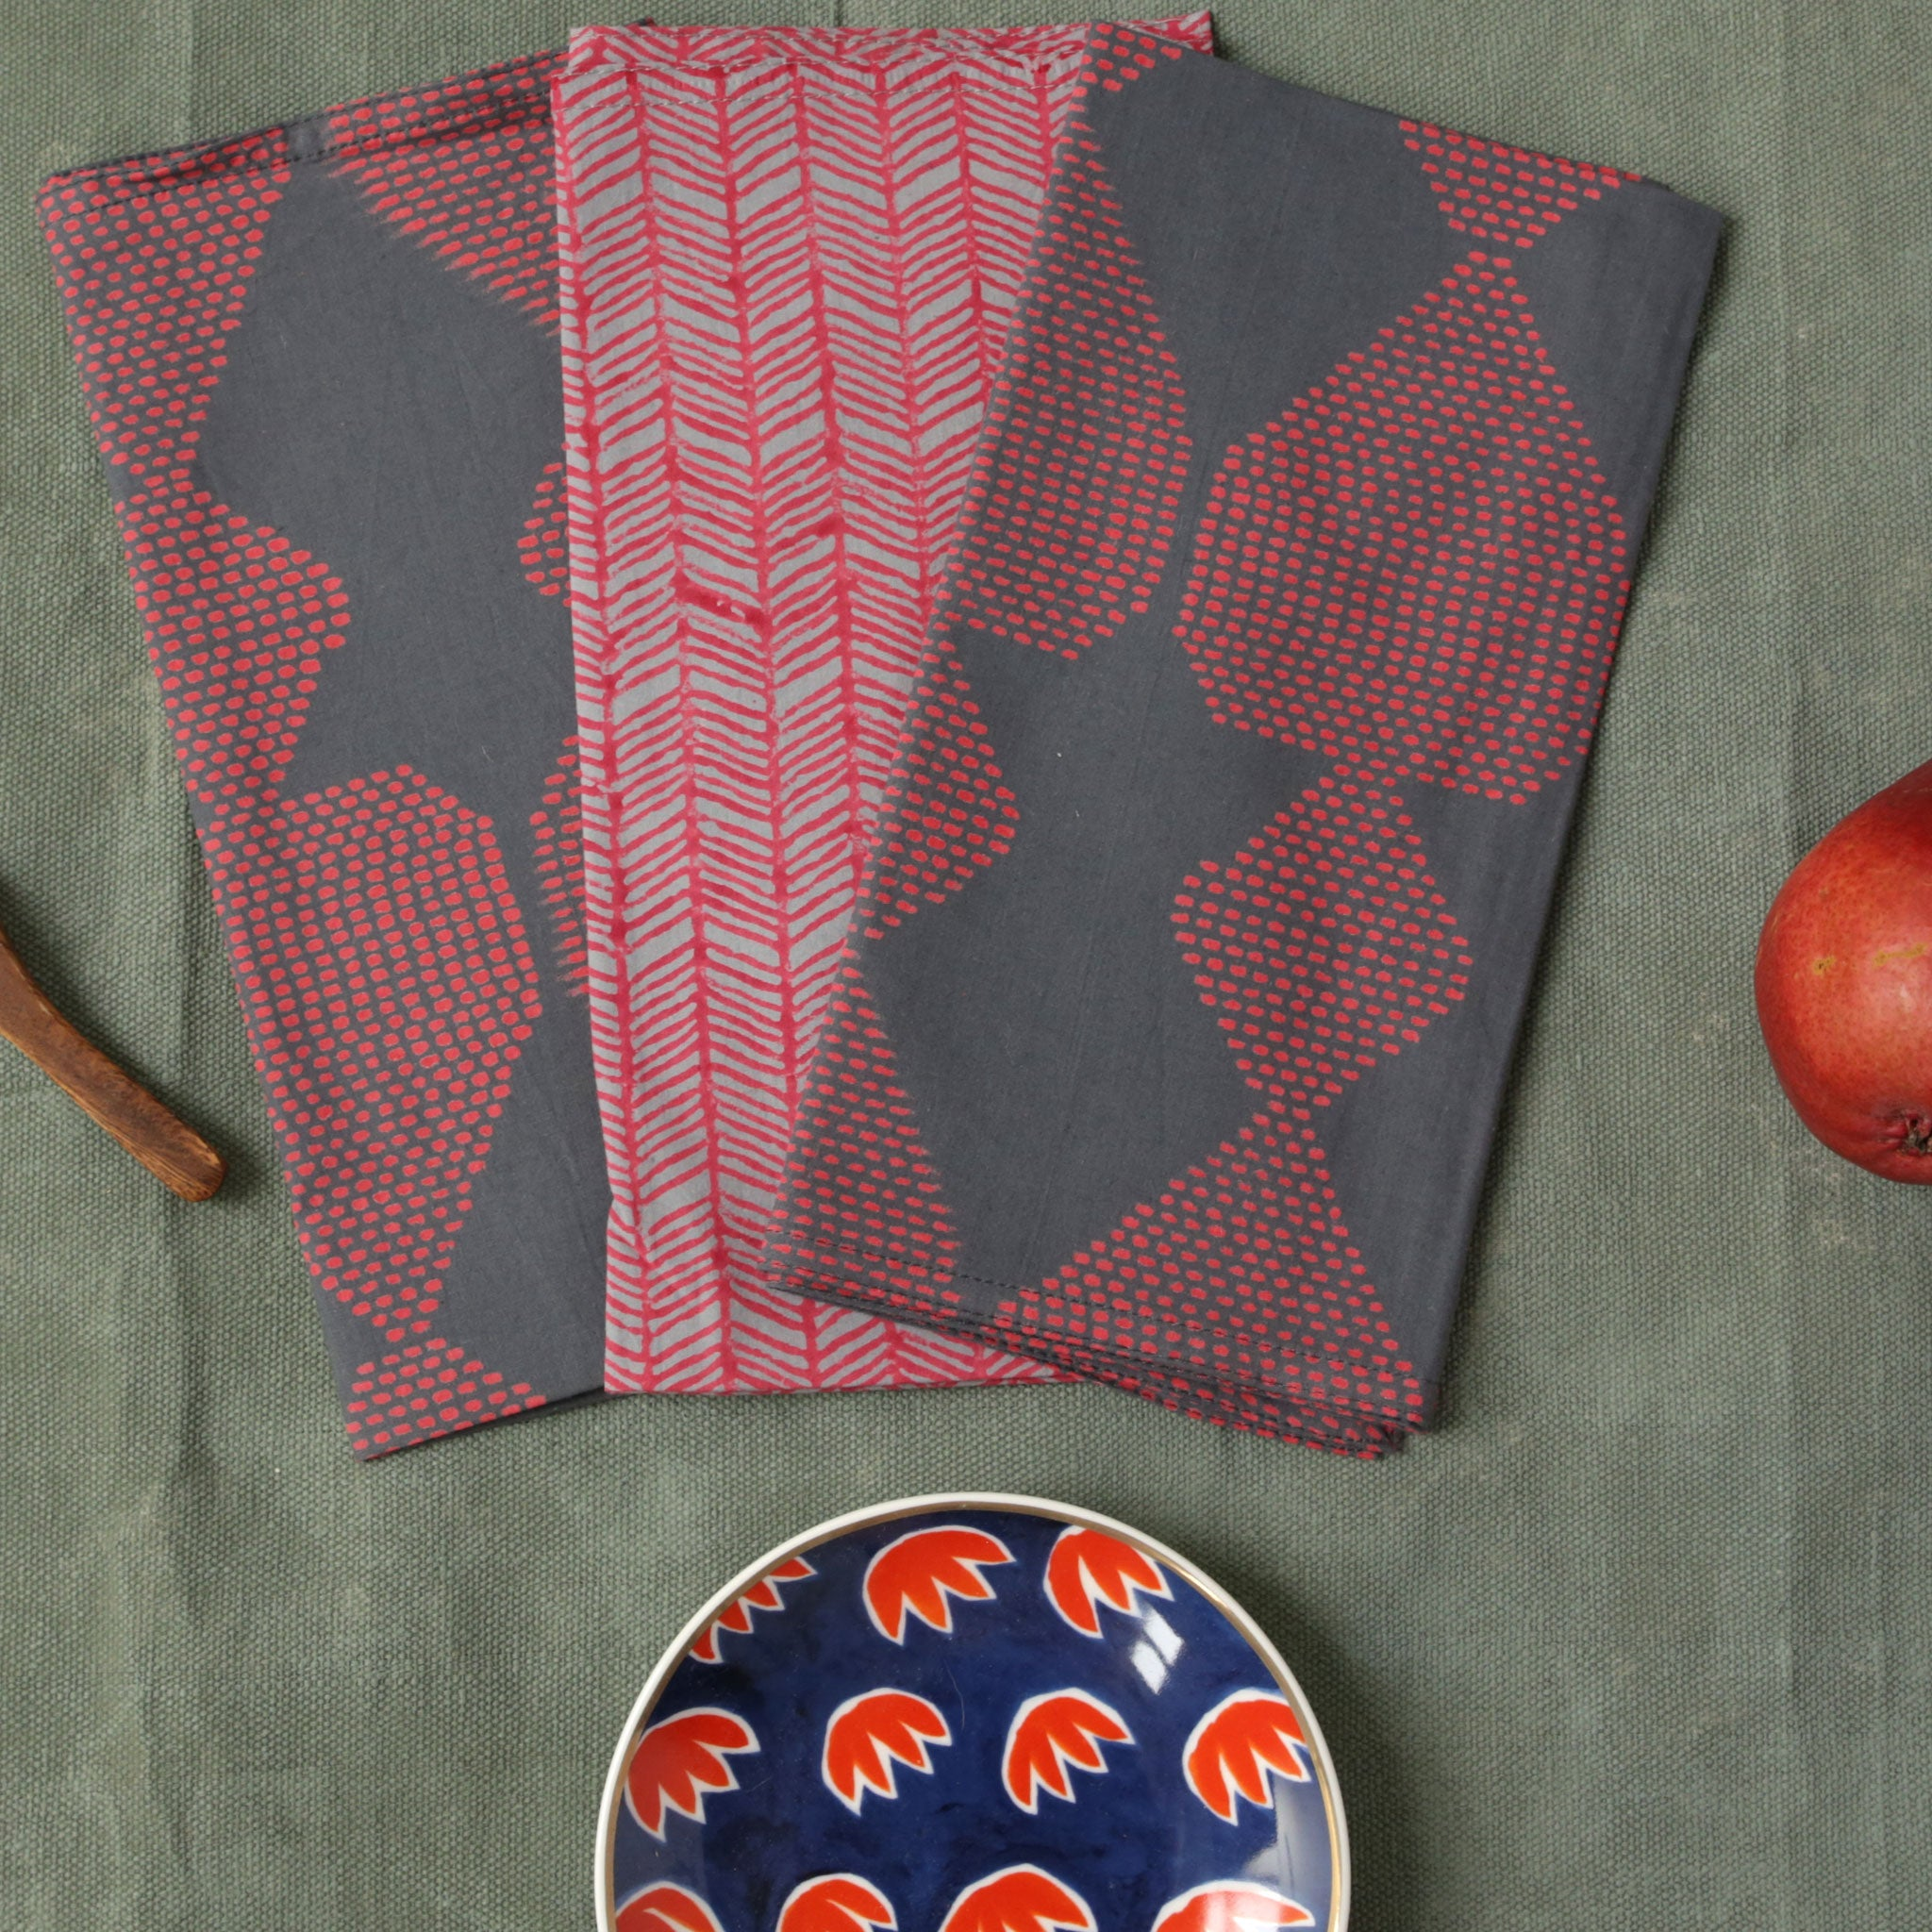 Plume Red Block Printed Napkins - set of 4